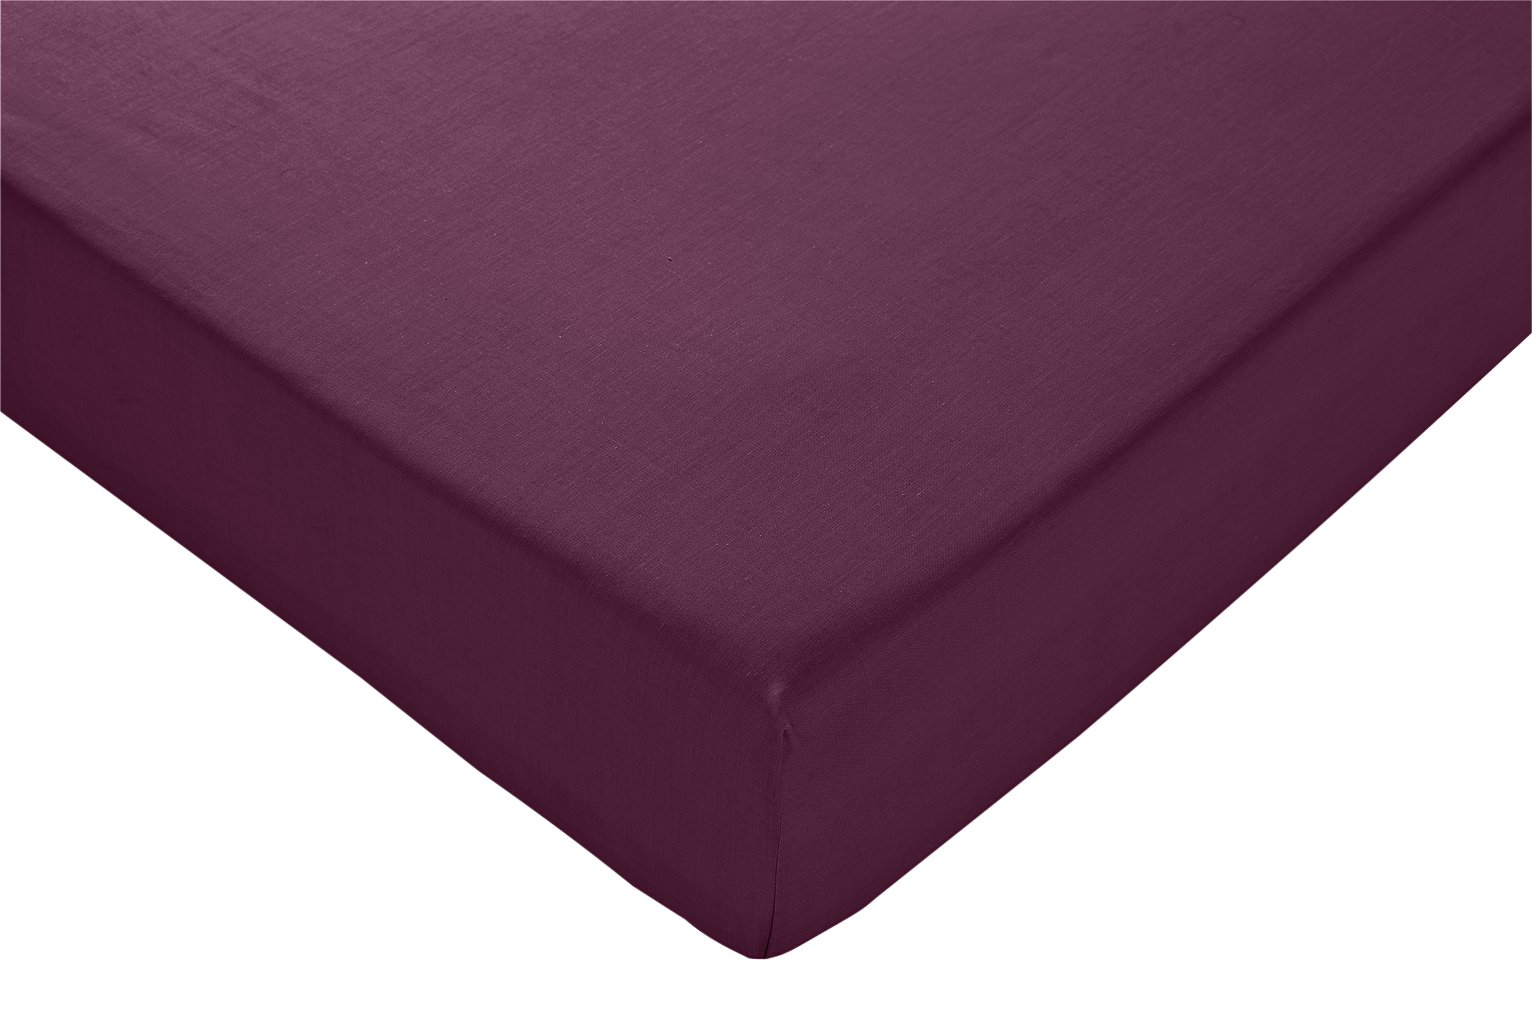 Argos Home Fig Cotton Rich Fitted Sheet - Double